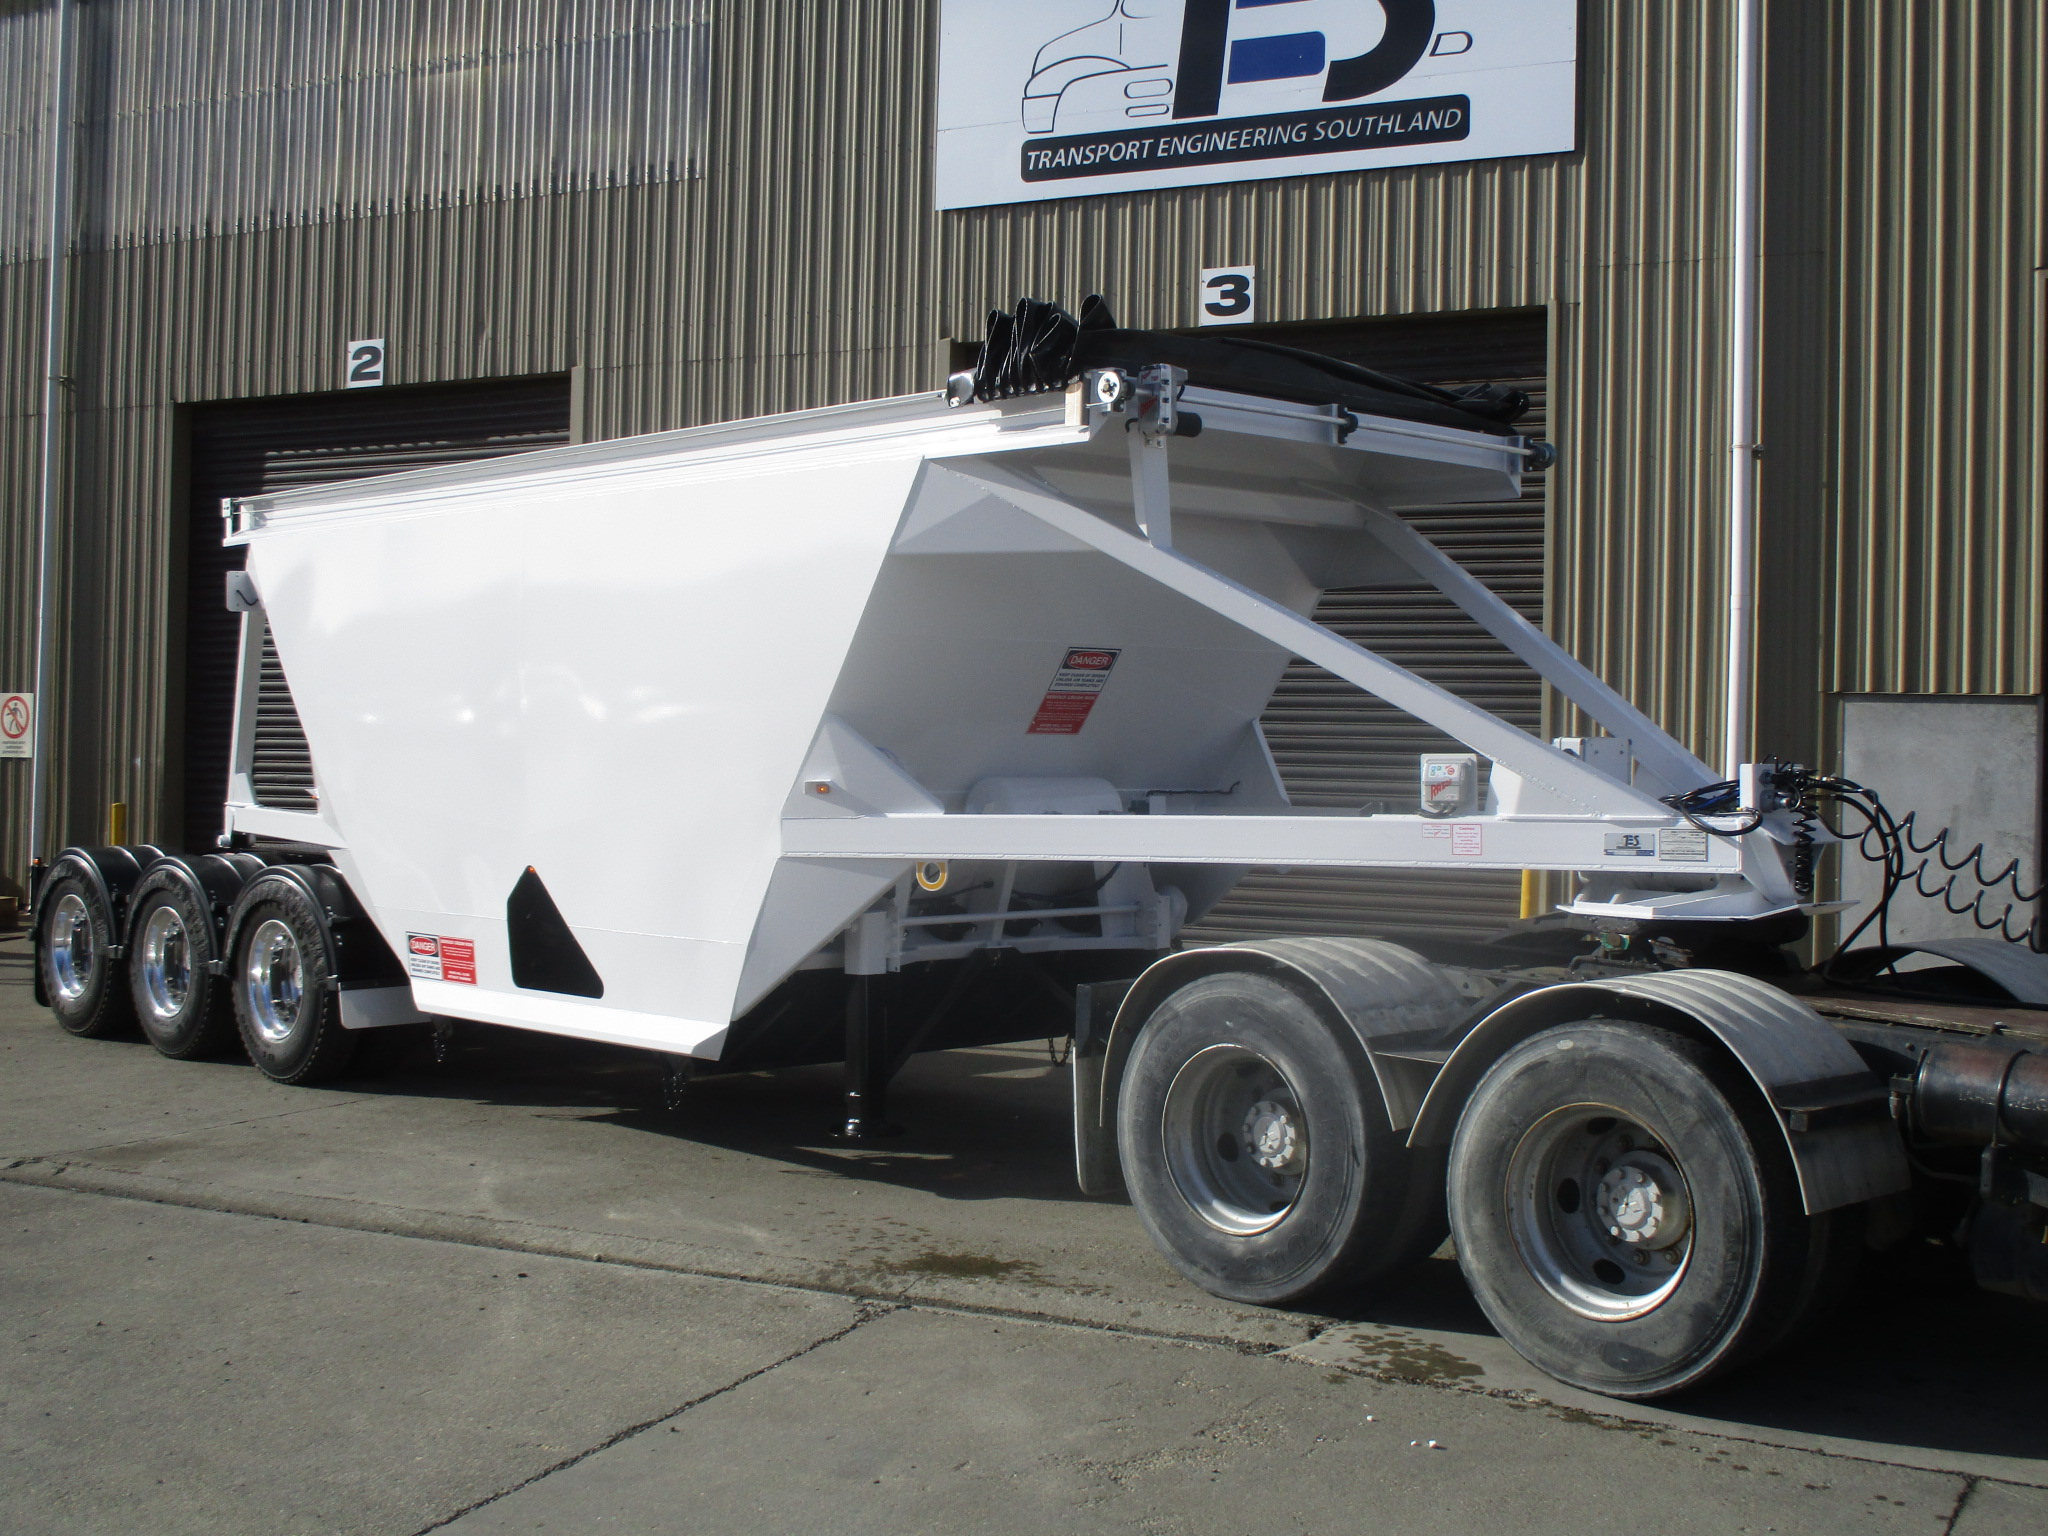 TES - Transport Engineering Southland | Belly/Bottom Dumper